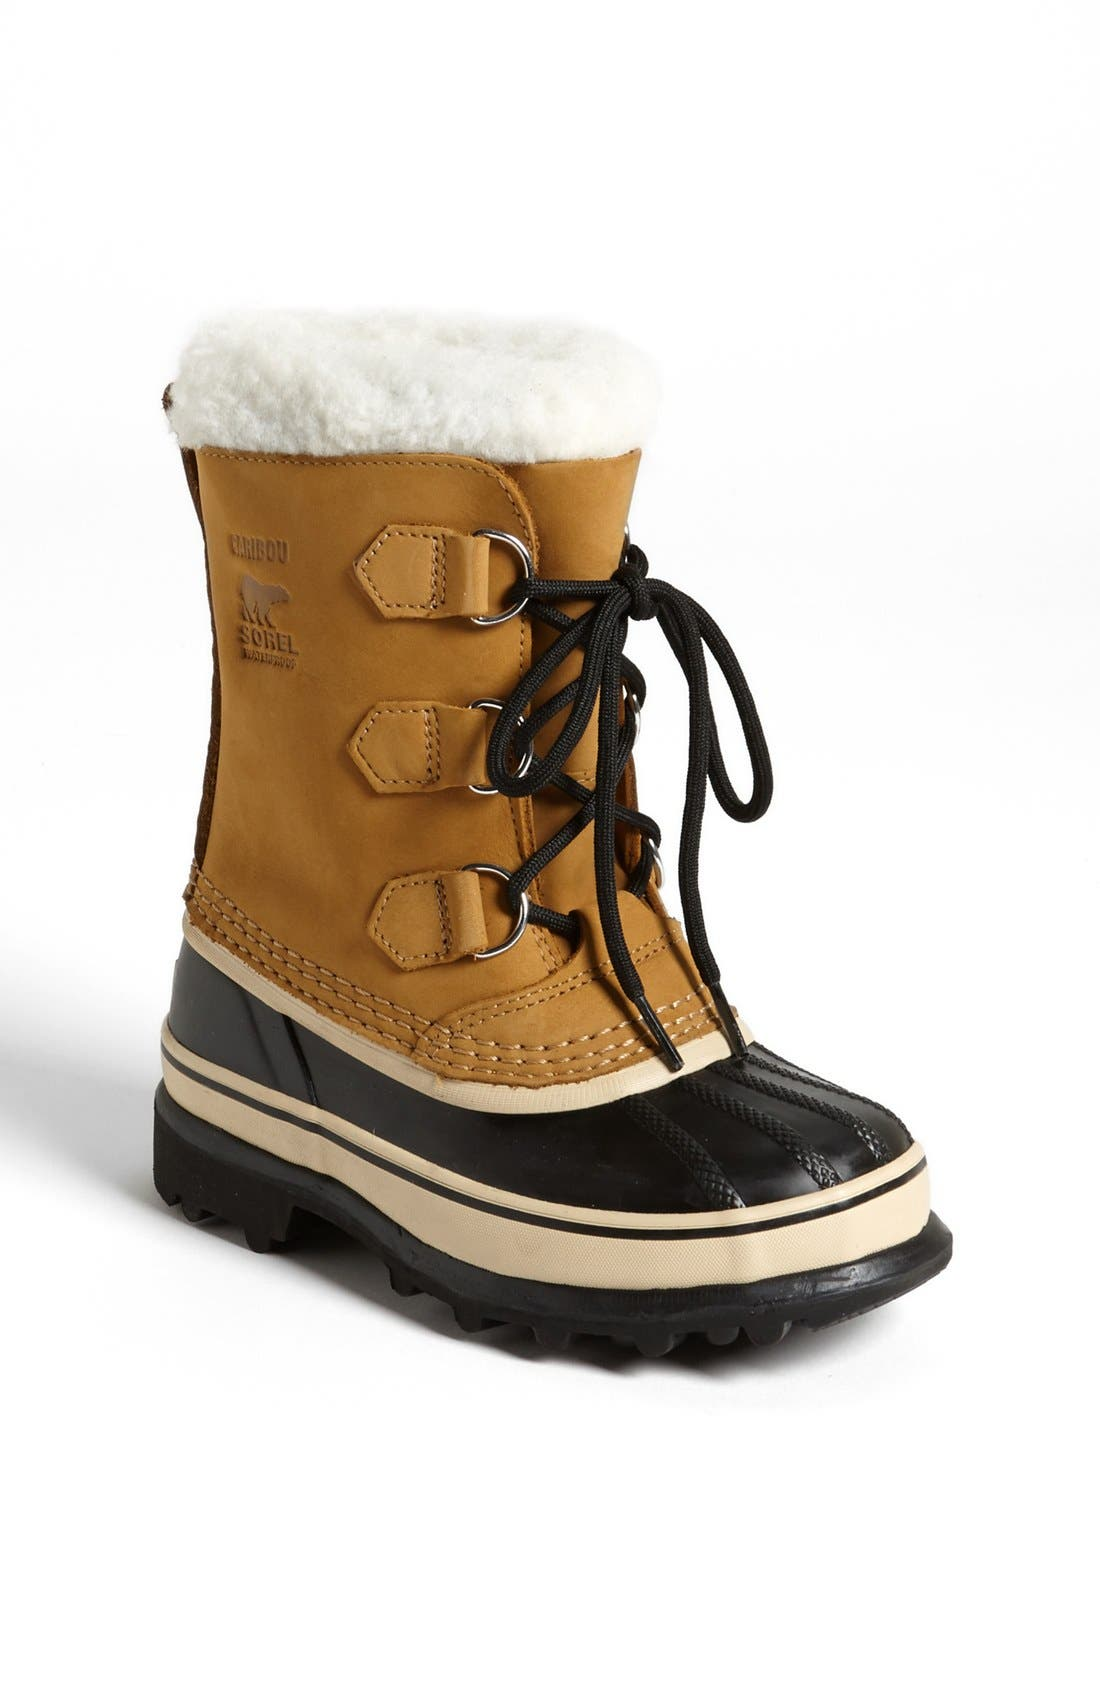 Main Image - SOREL Caribou Waterproof Boot (Little Kid & Big Kid)